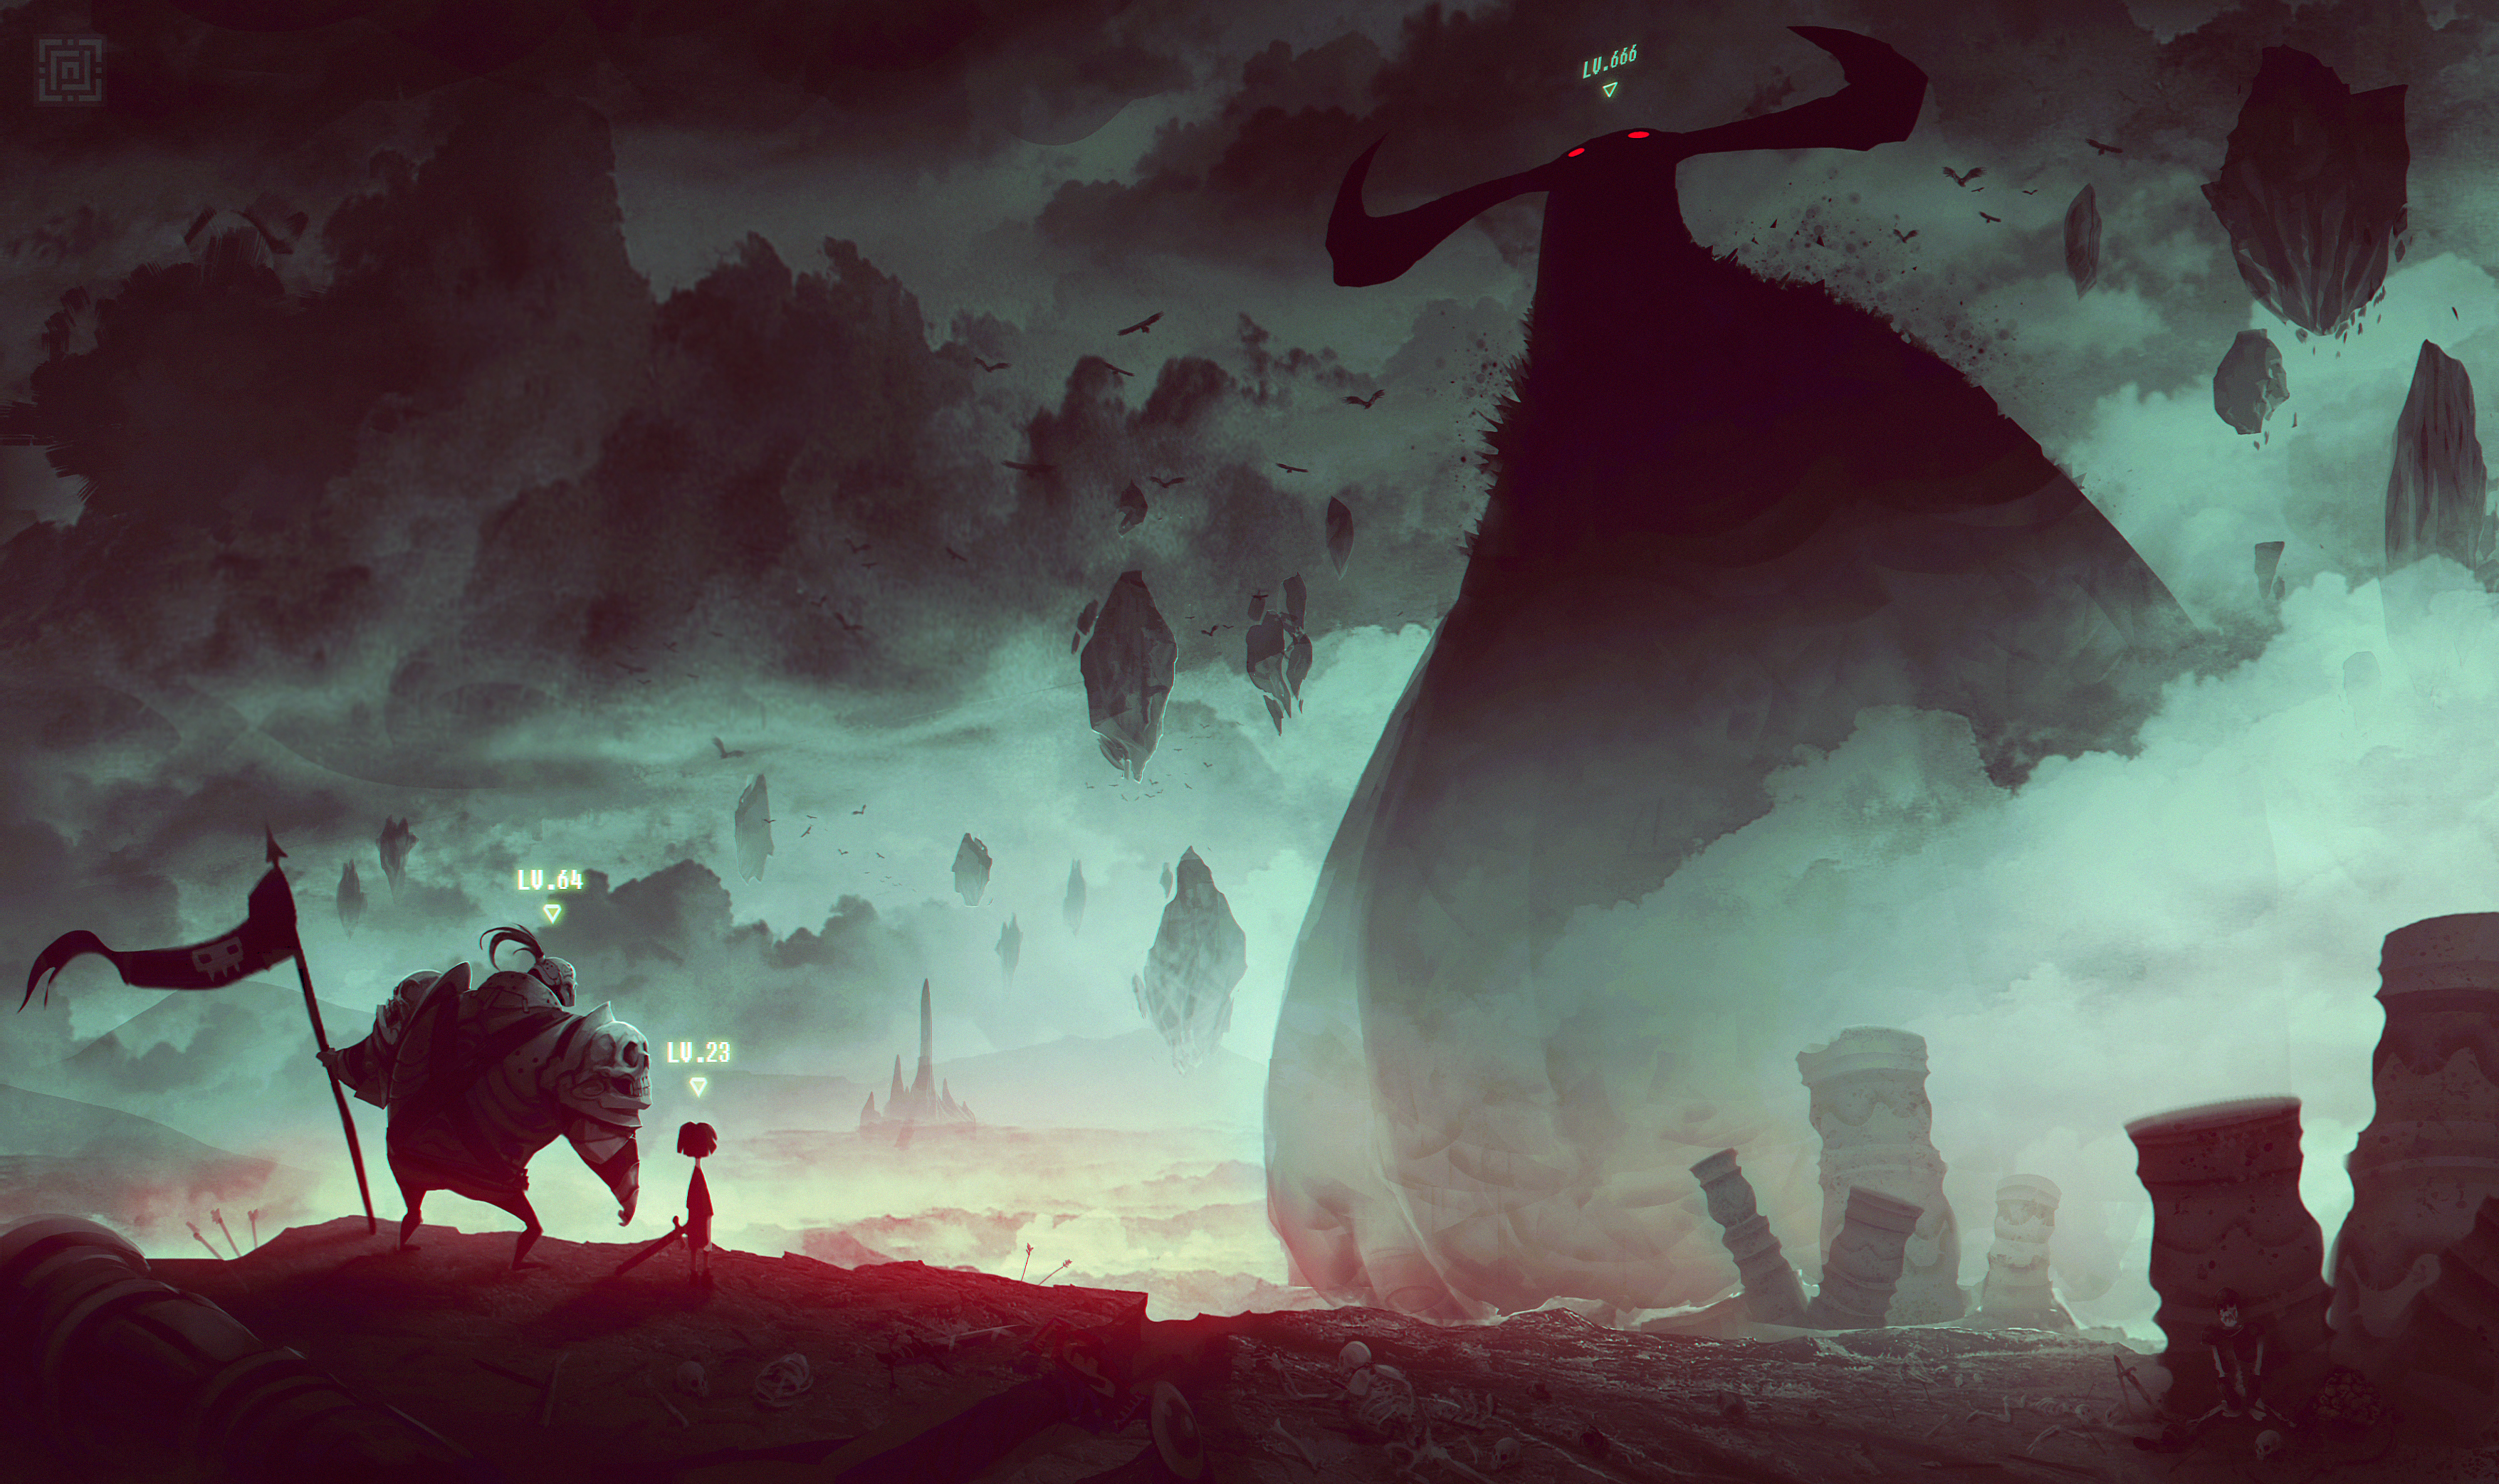 Deadslug_digital_painting_illustration_levelup_warrior_boss